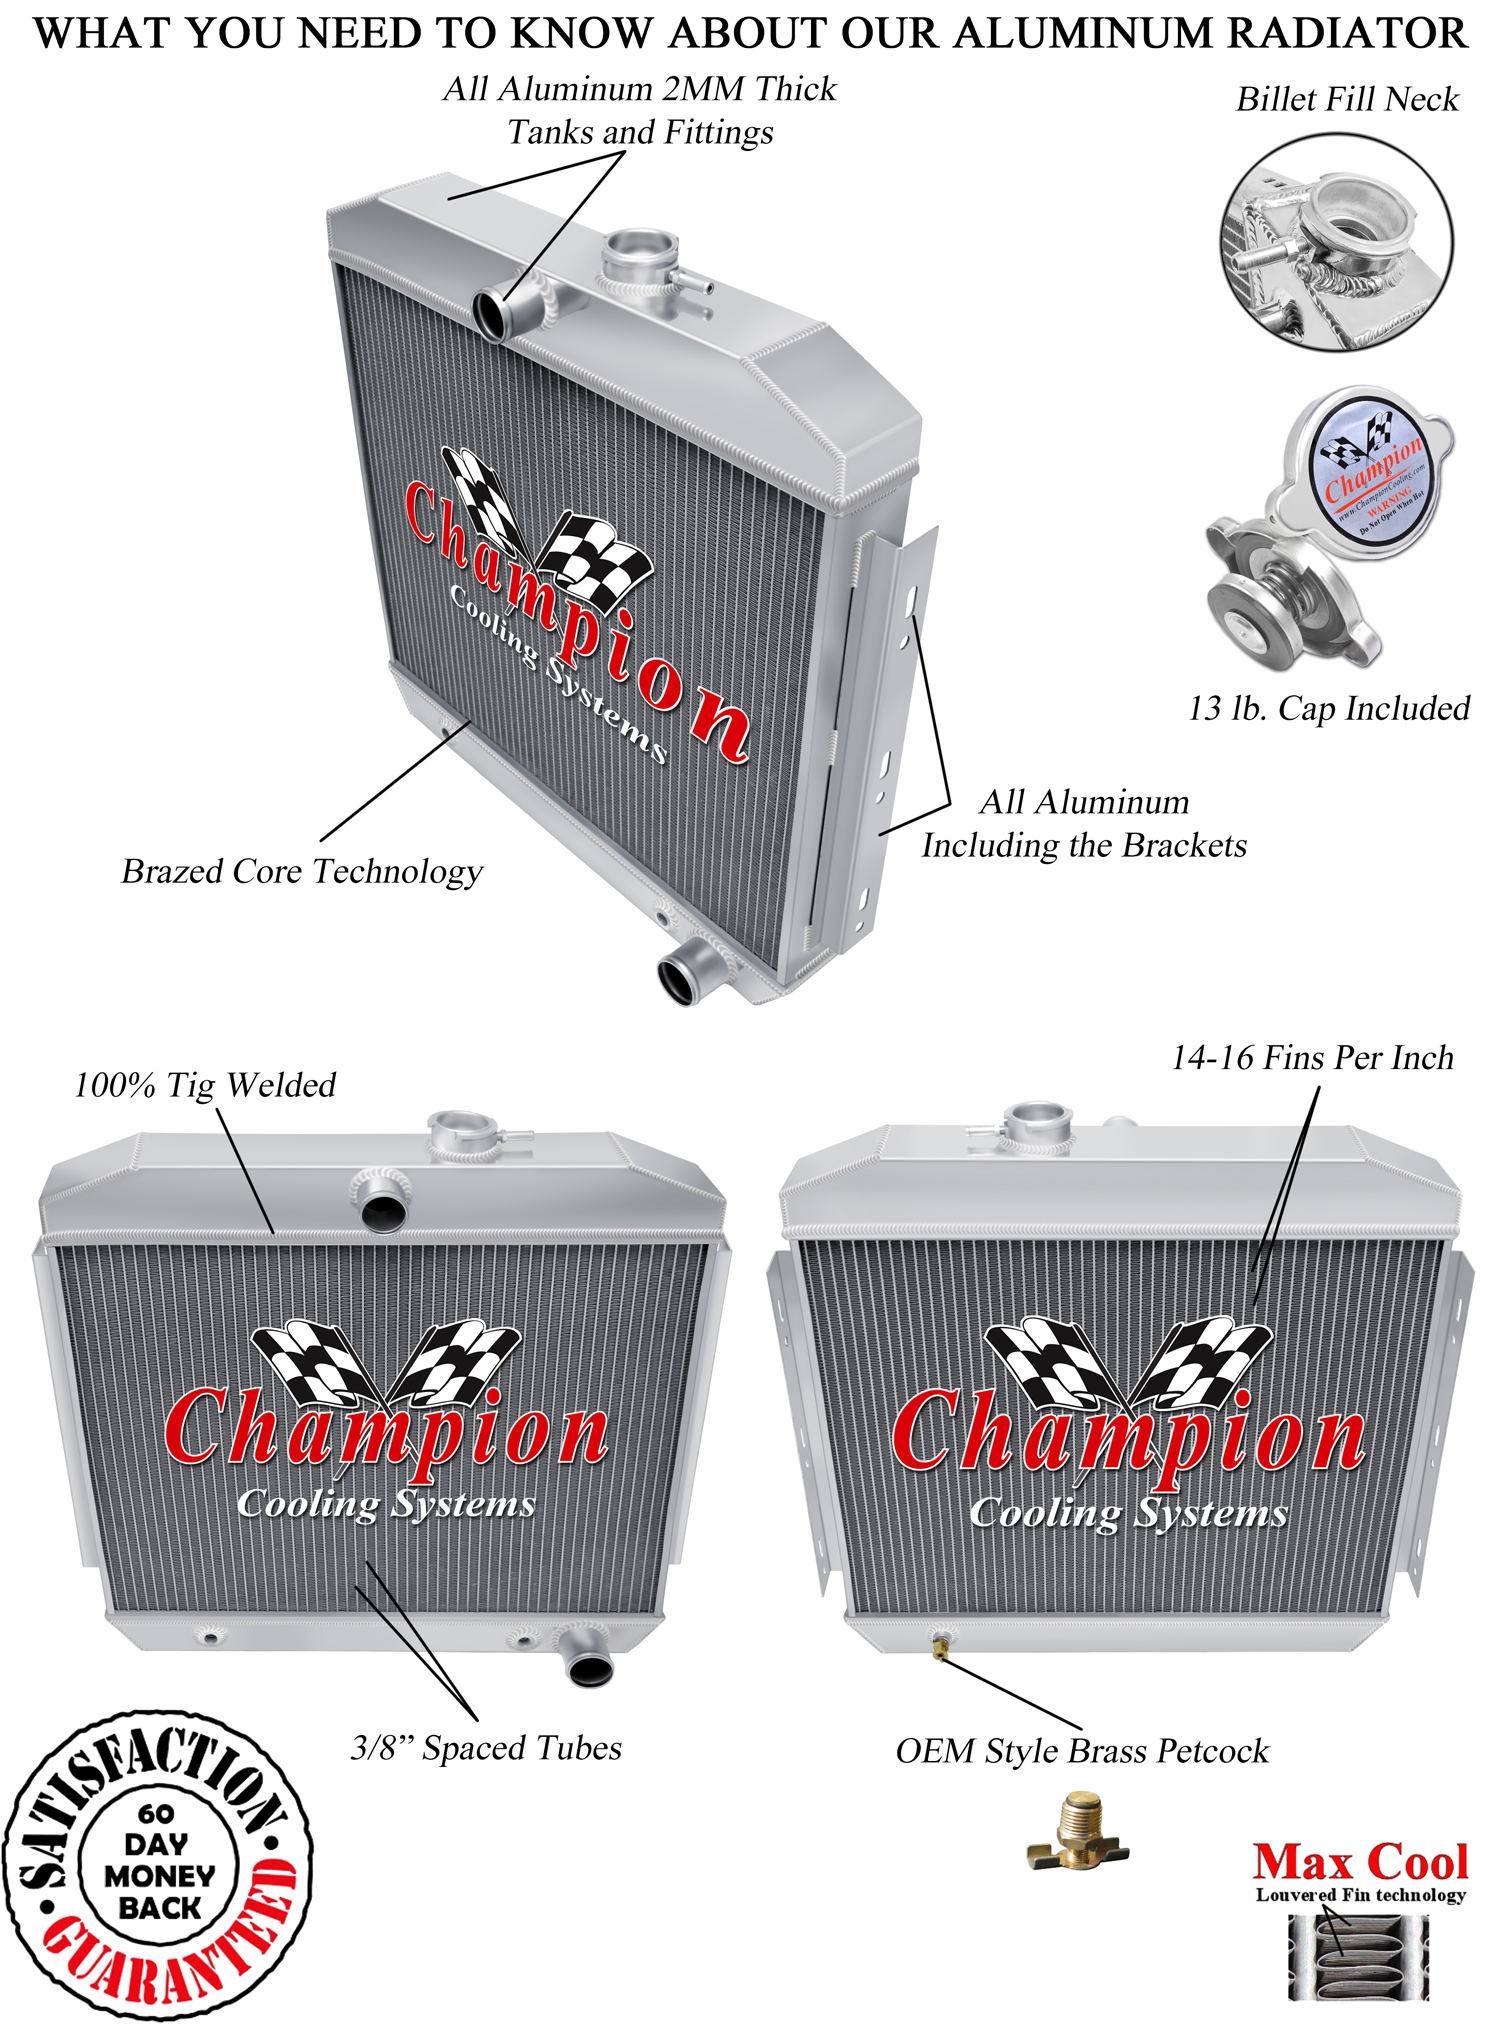 https://www.championcooling.com/photos/Photos%20White/Without%20Fans/5057/5057.jpg